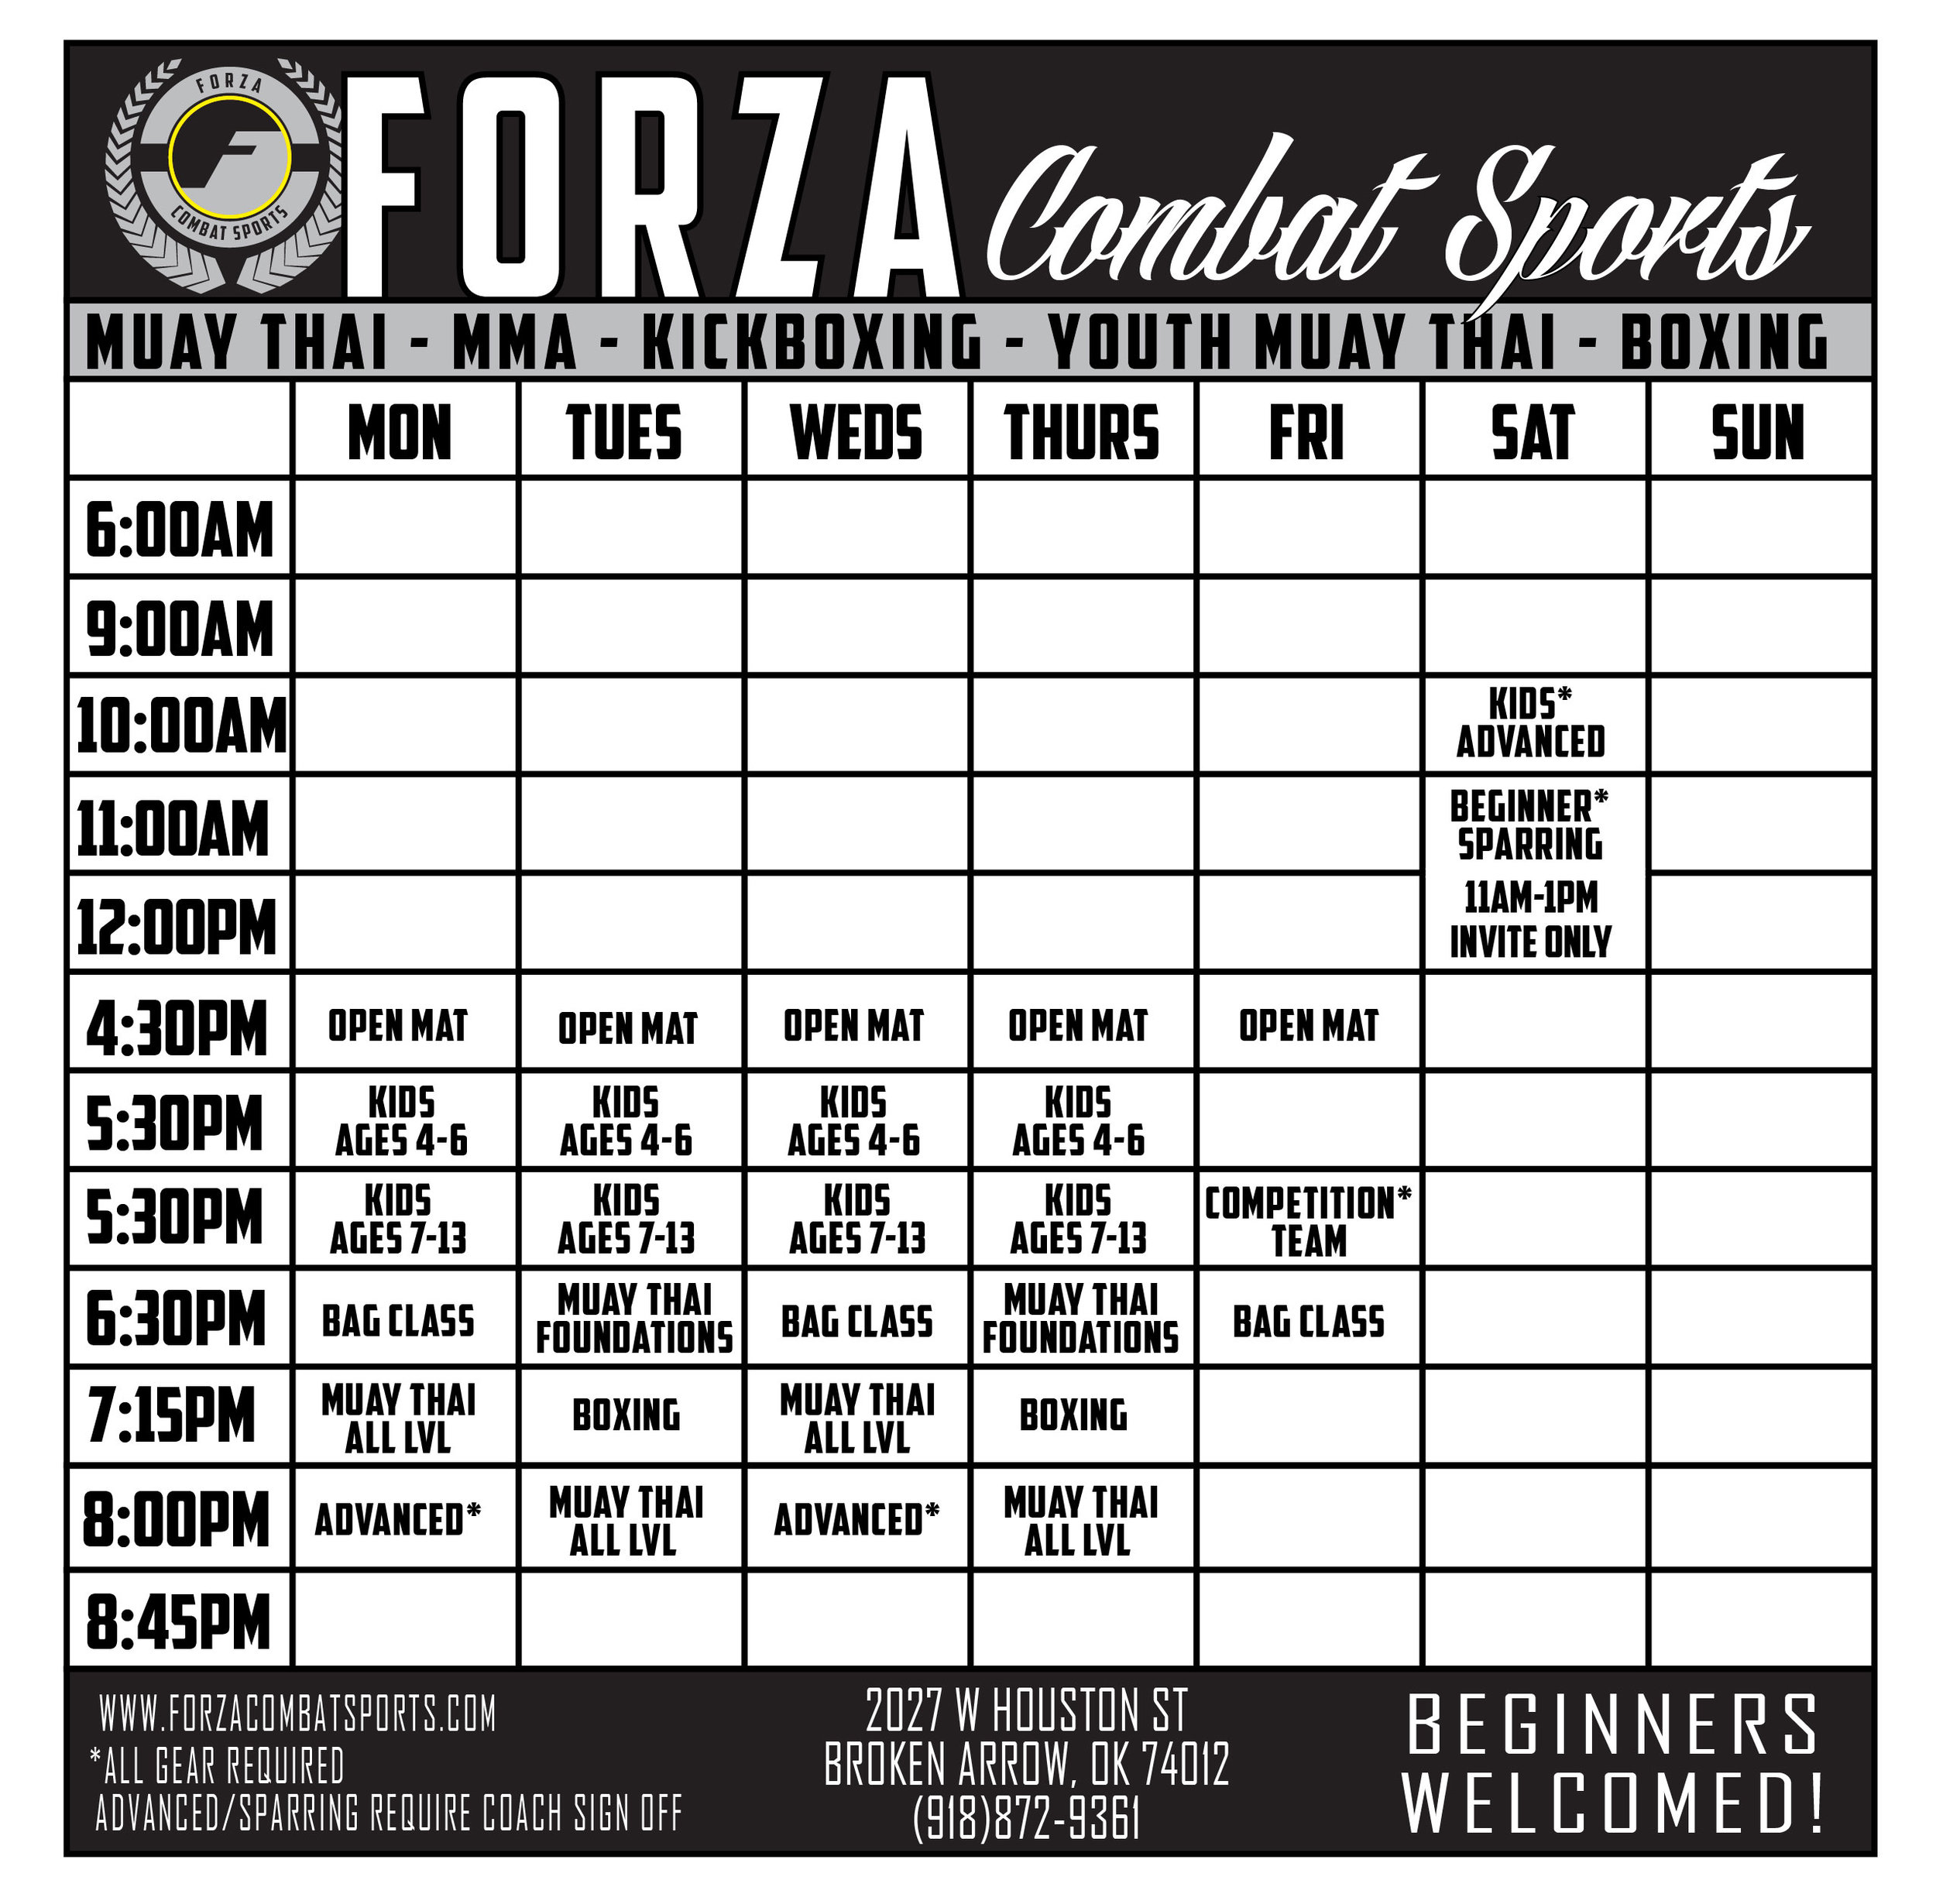 forza schedule may 2019_may 2019 schedule.jpg